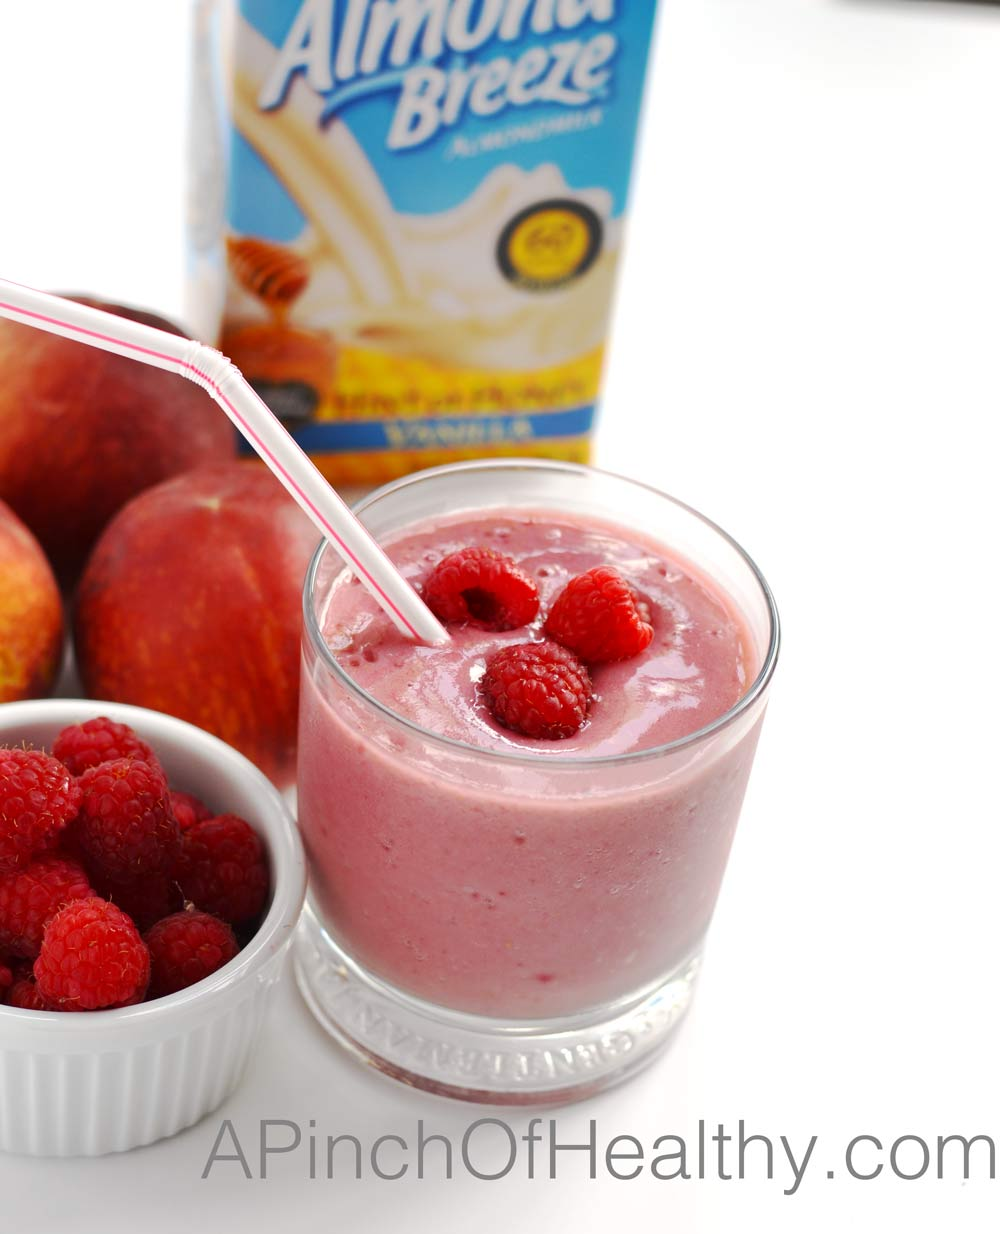 Raspberry Peach Smoothie - 4 ingredients and so delicious! | APinchOfHealthy.com